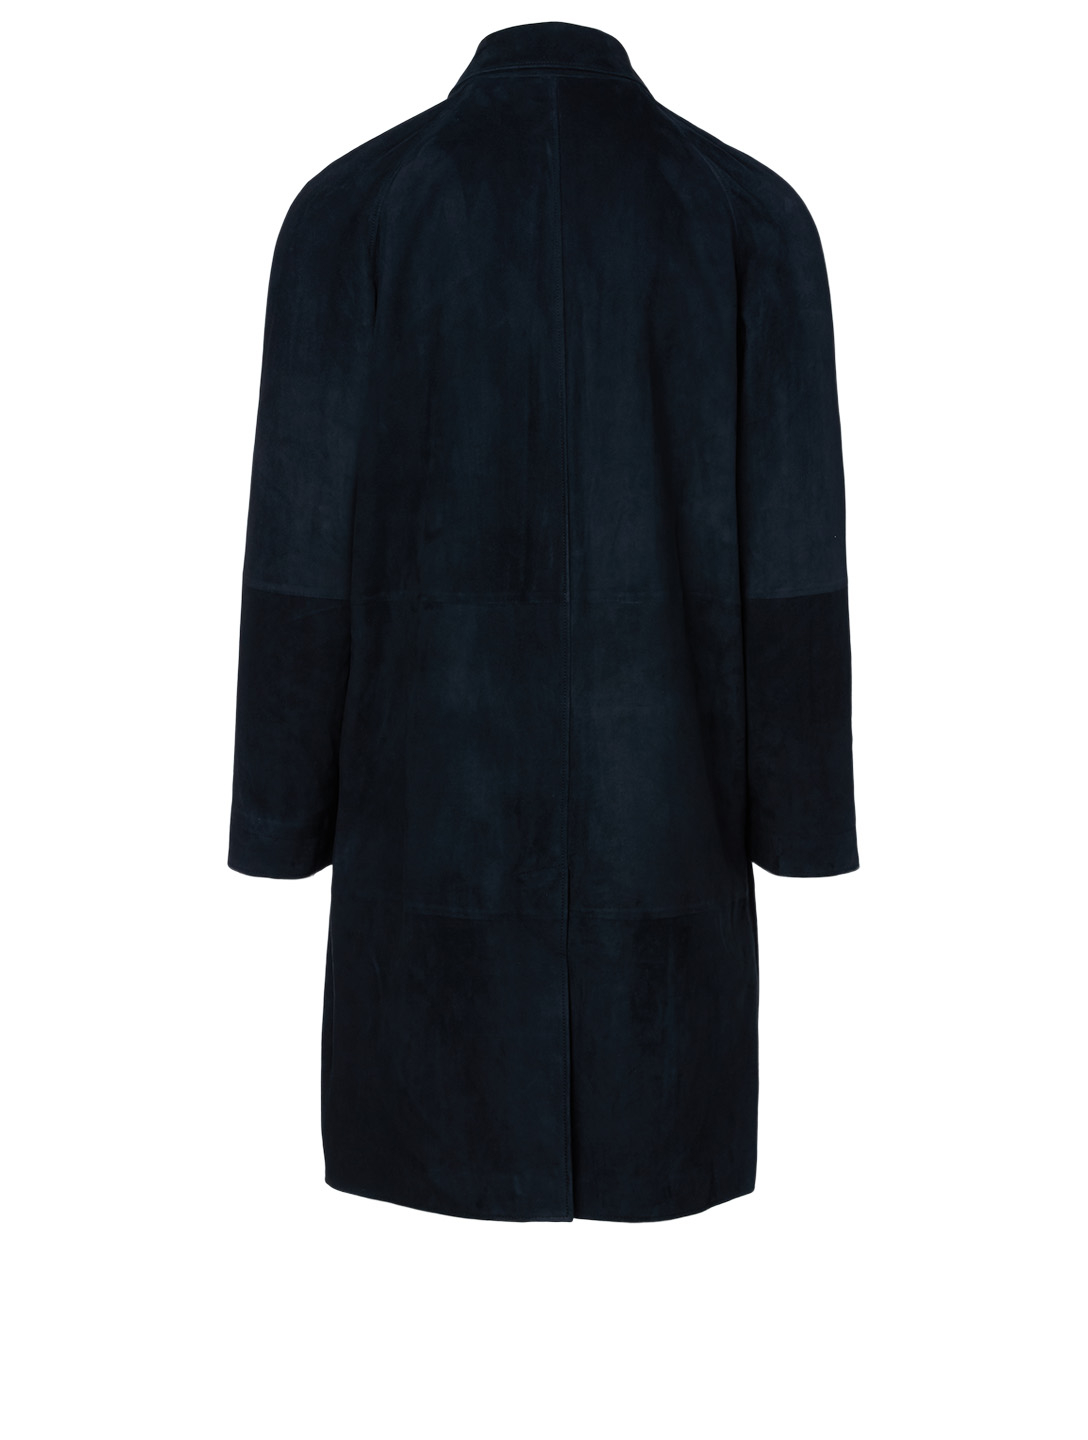 THE ROW Parker Suede Coat Men's Black